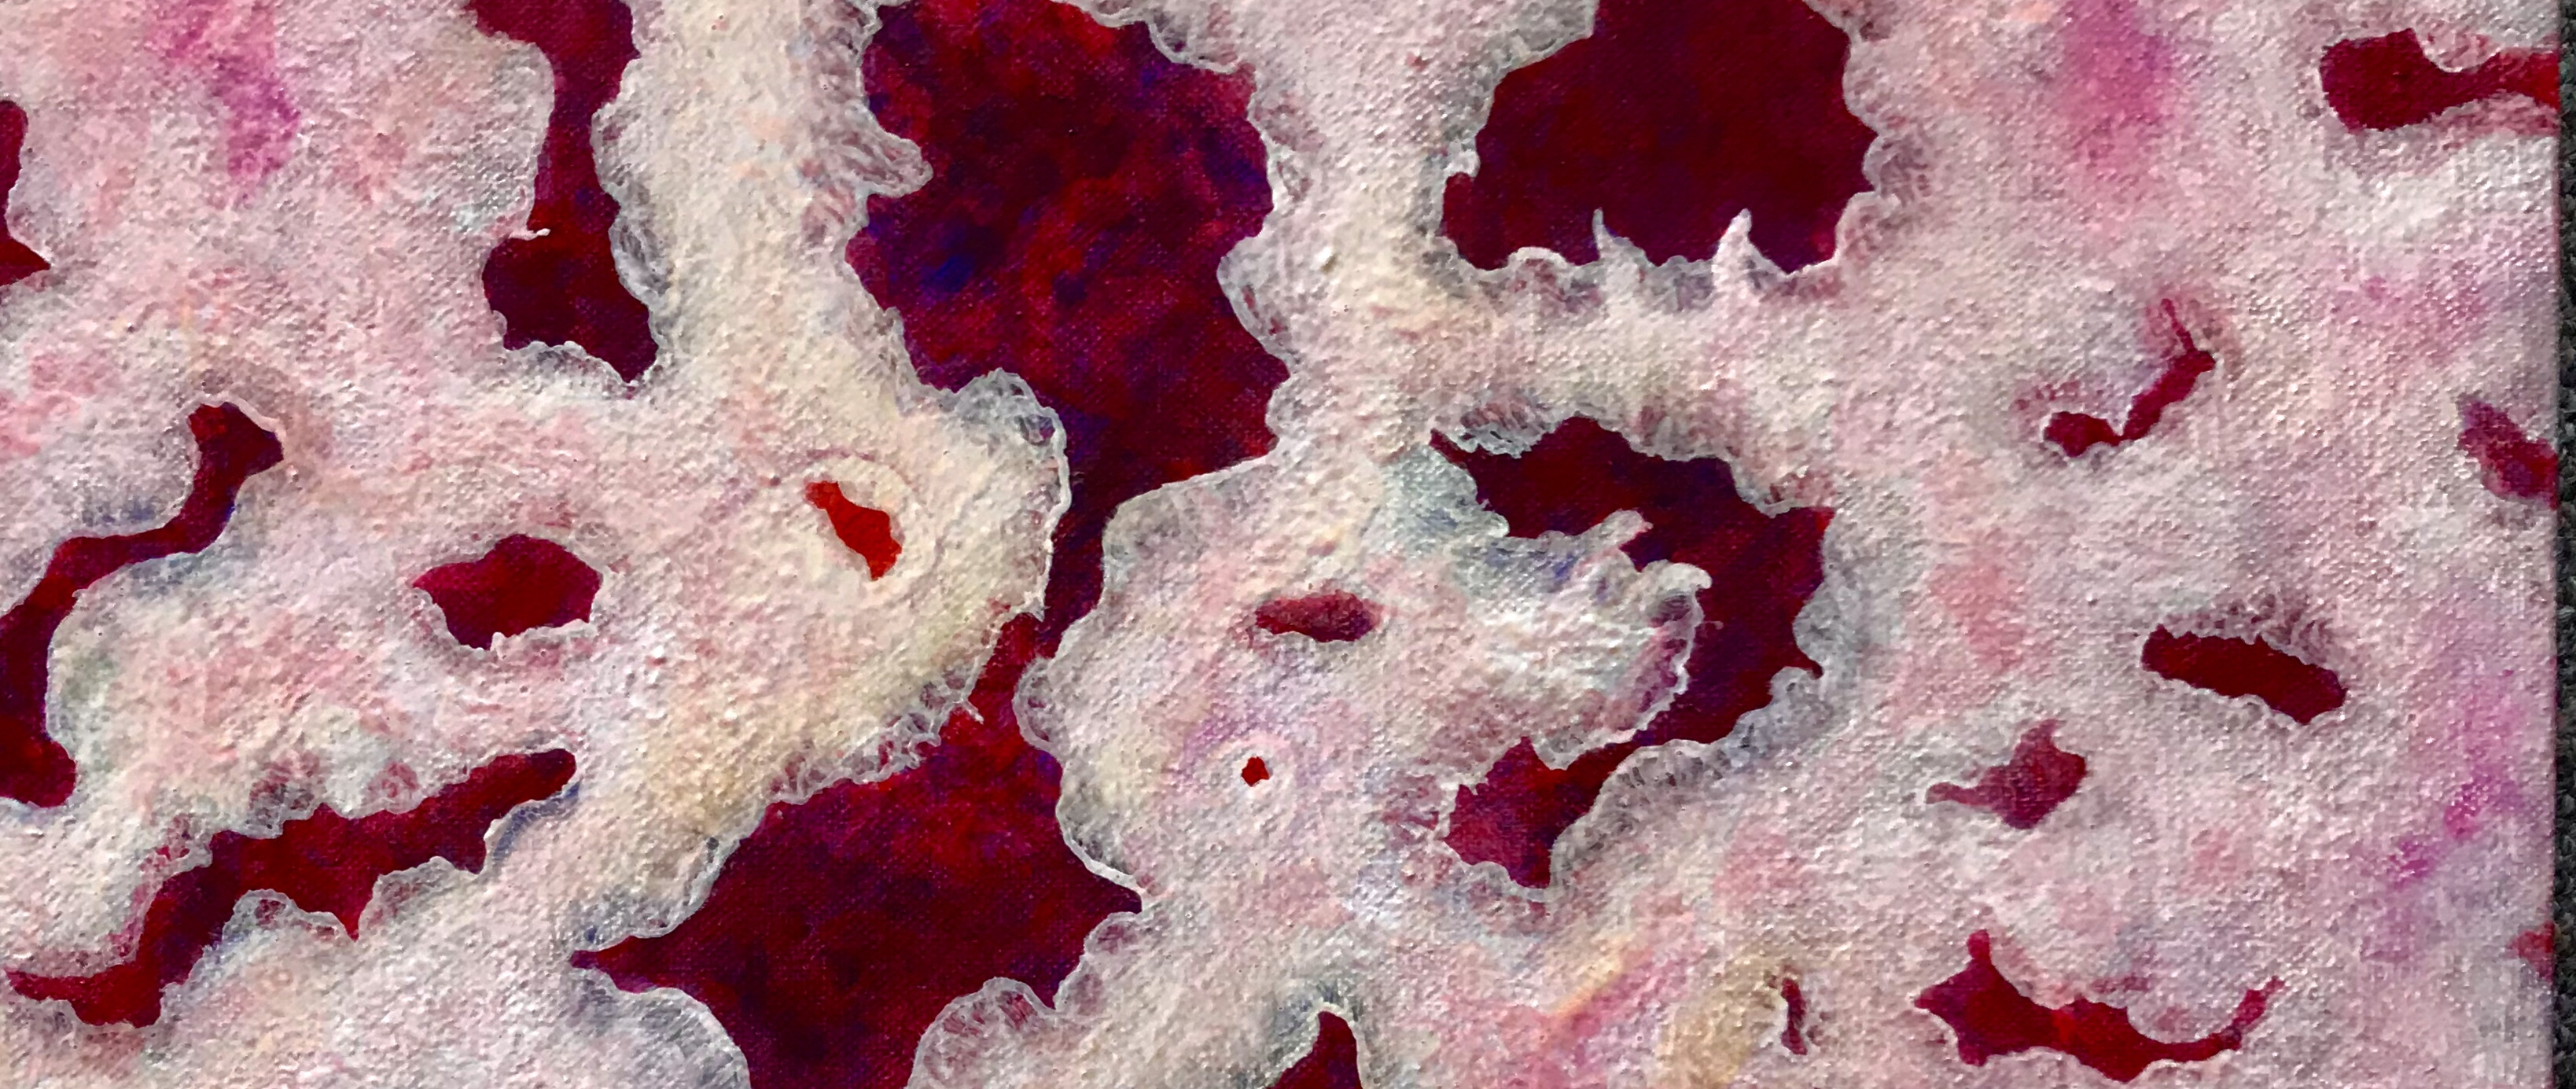 Detail of a painting by MJ Seal that looks like a group of lacey pink coral polyps with strawberry jam colored insides